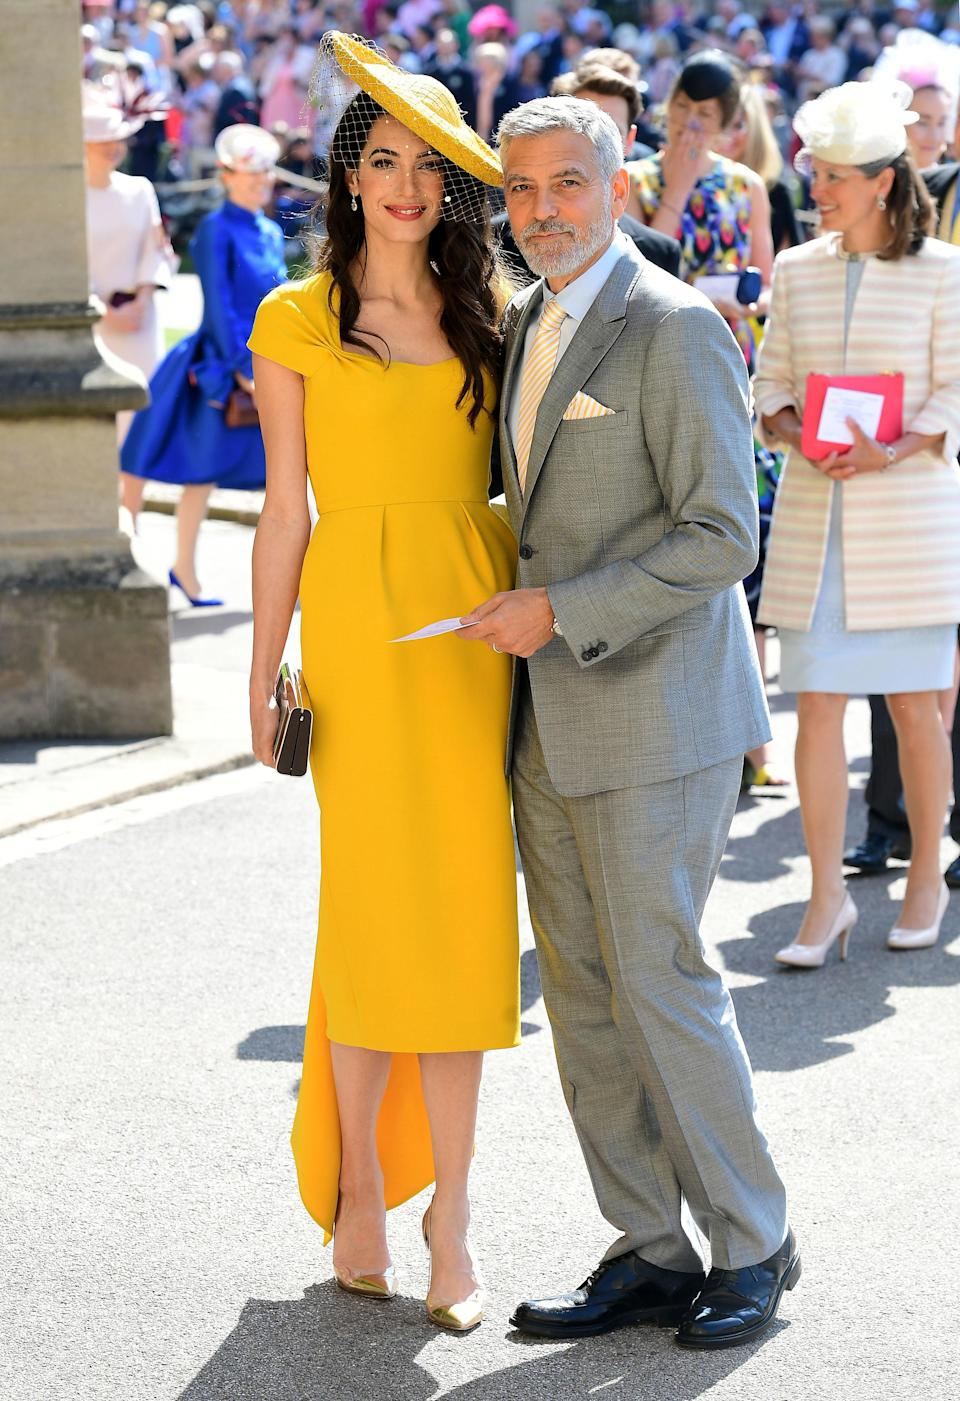 Amal Clooney in Stella McCartney at the royal wedding with her husband, George. (Photo: Getty Images)